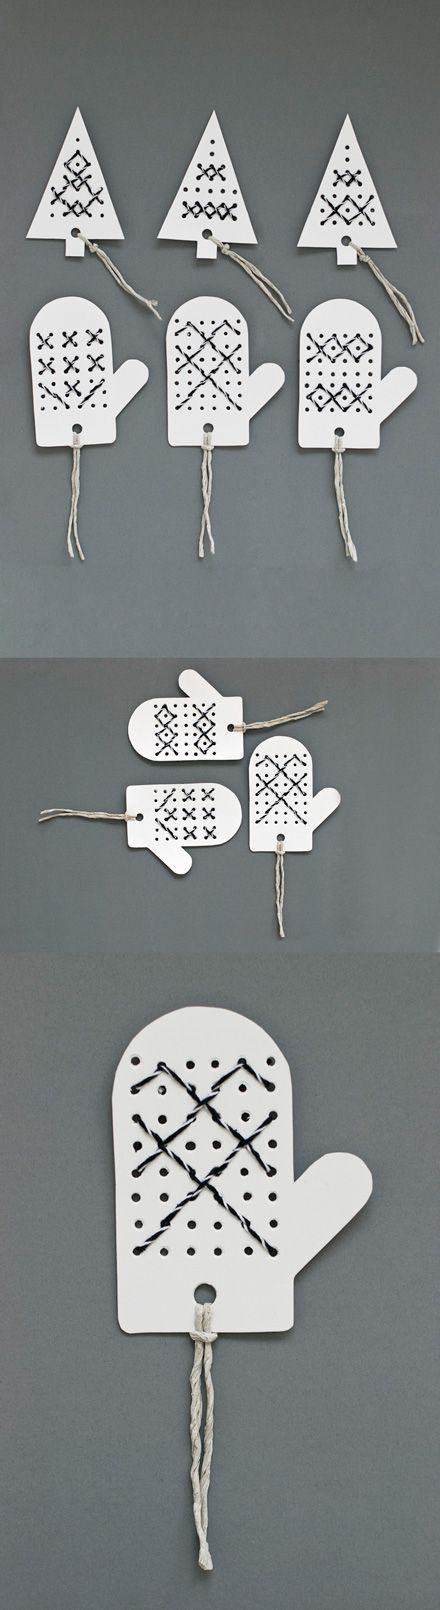 Christmas tags with a hole punch. Decorate with colorful yarn. Repinned by www.mygrowingtraditions.com